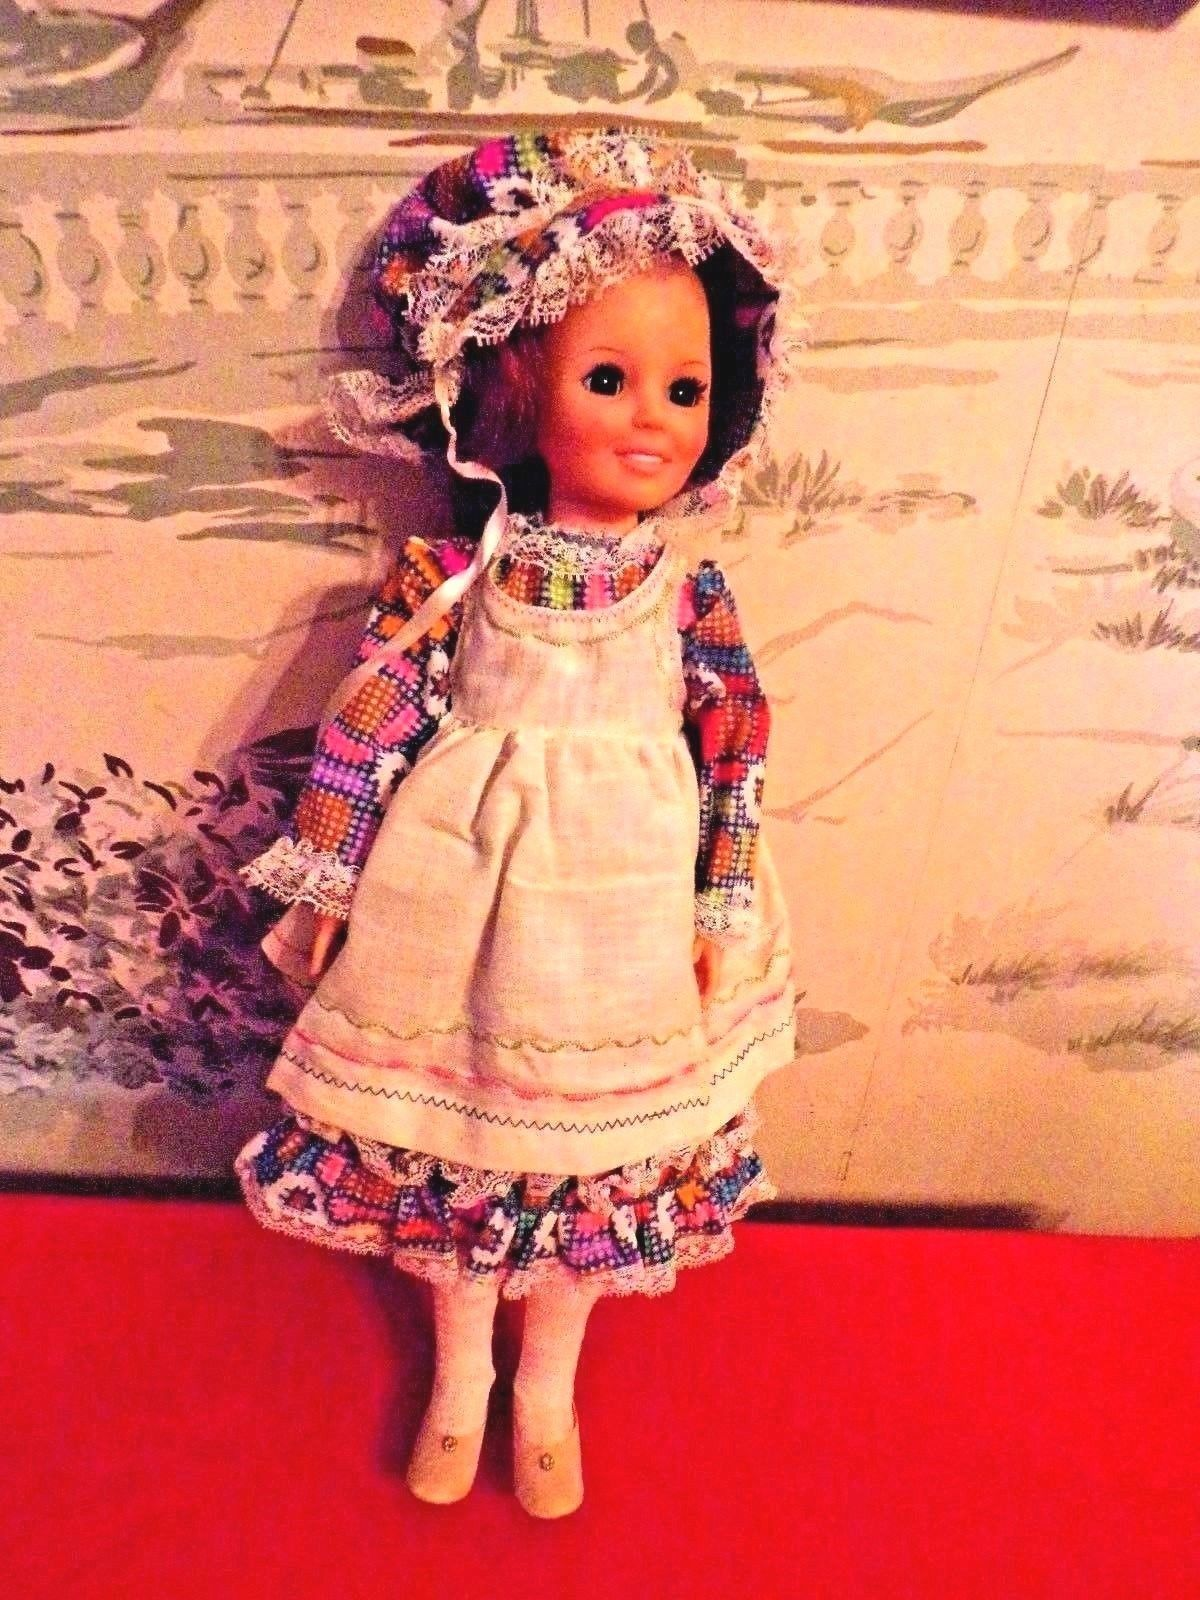 "Primary image for Vintage 1968 Ideal Crissy Doll 17"" with Growing Red/auburn hair"